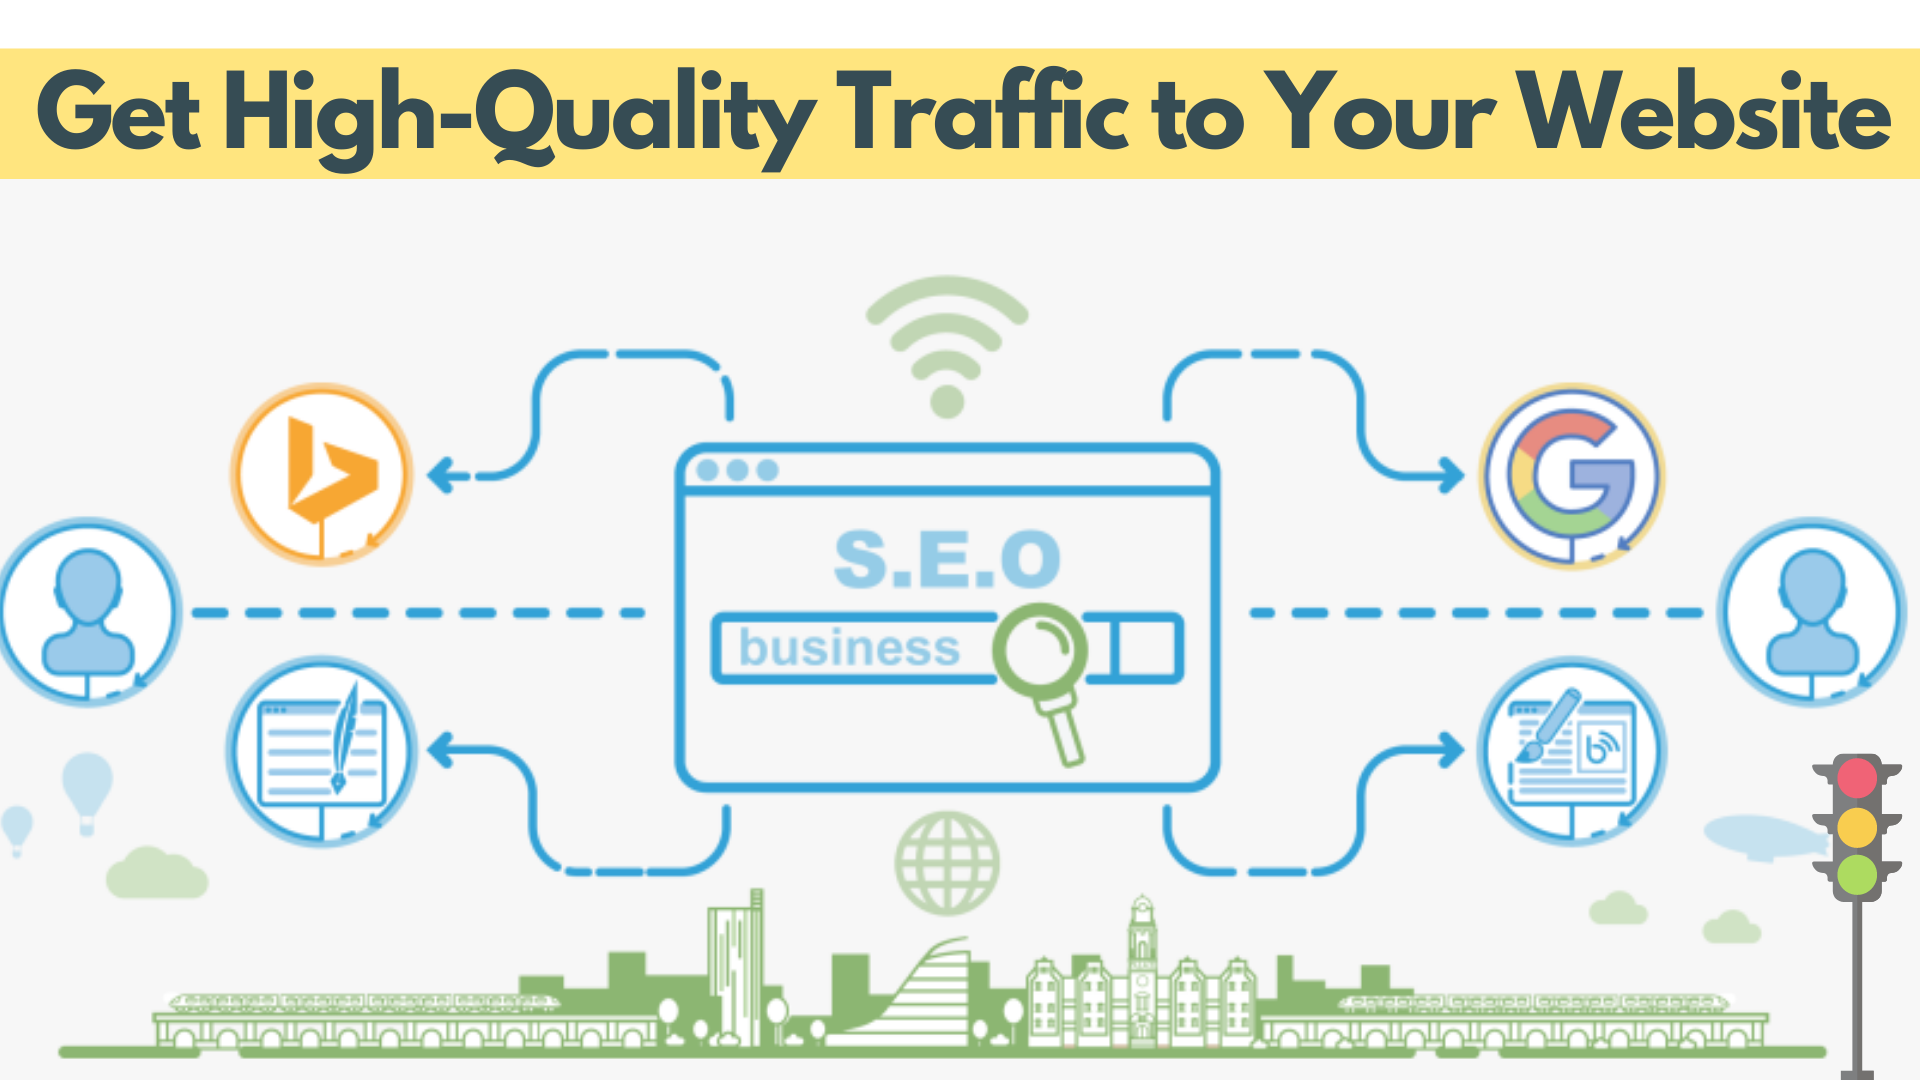 https://www.clubinfonline.com/2021/02/21/high-quality-traffic-to-your-website-ultimate-guide/